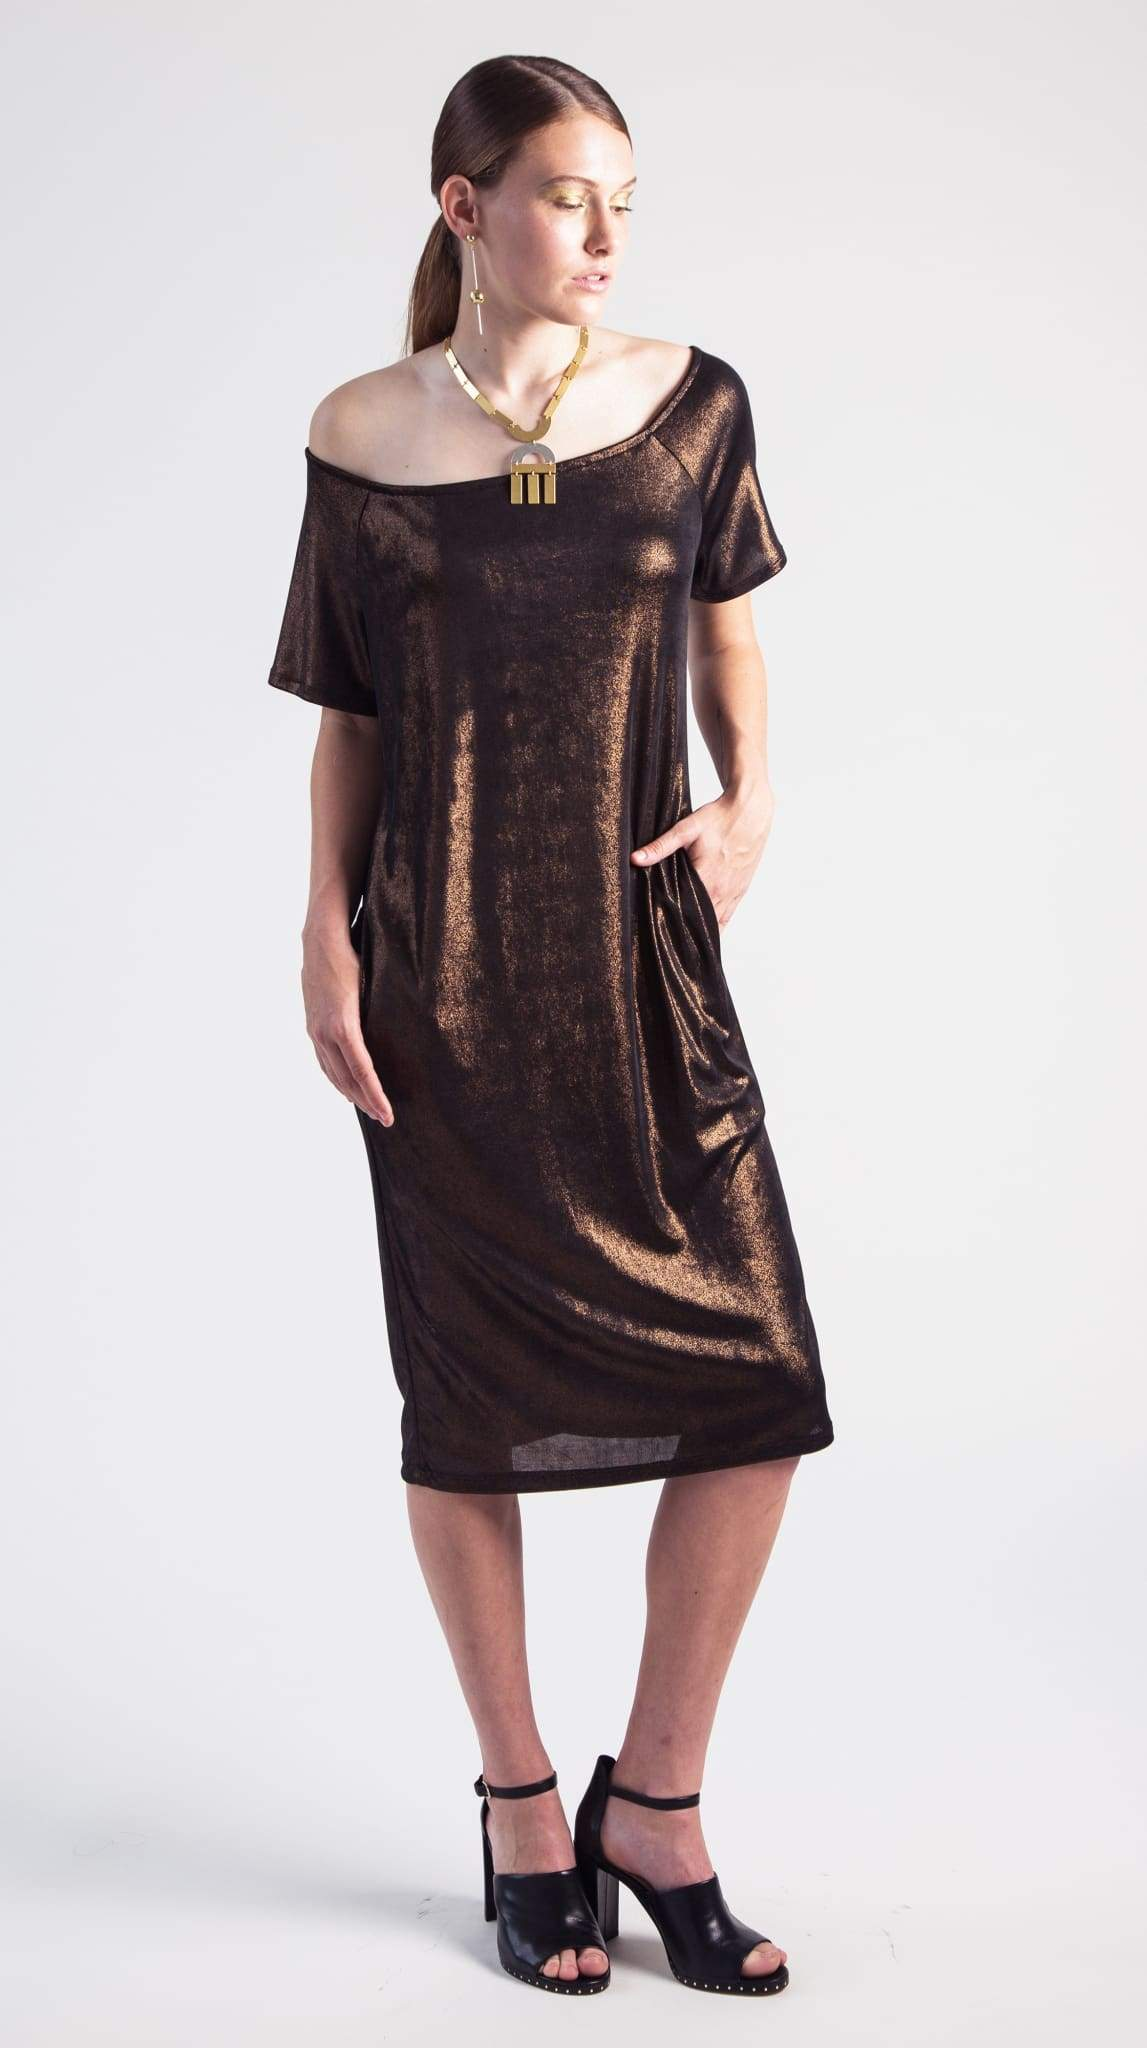 Bronze Rhea Raglan Sleeve Dress flatlay by VARYFORM for Nineteenth Amendment